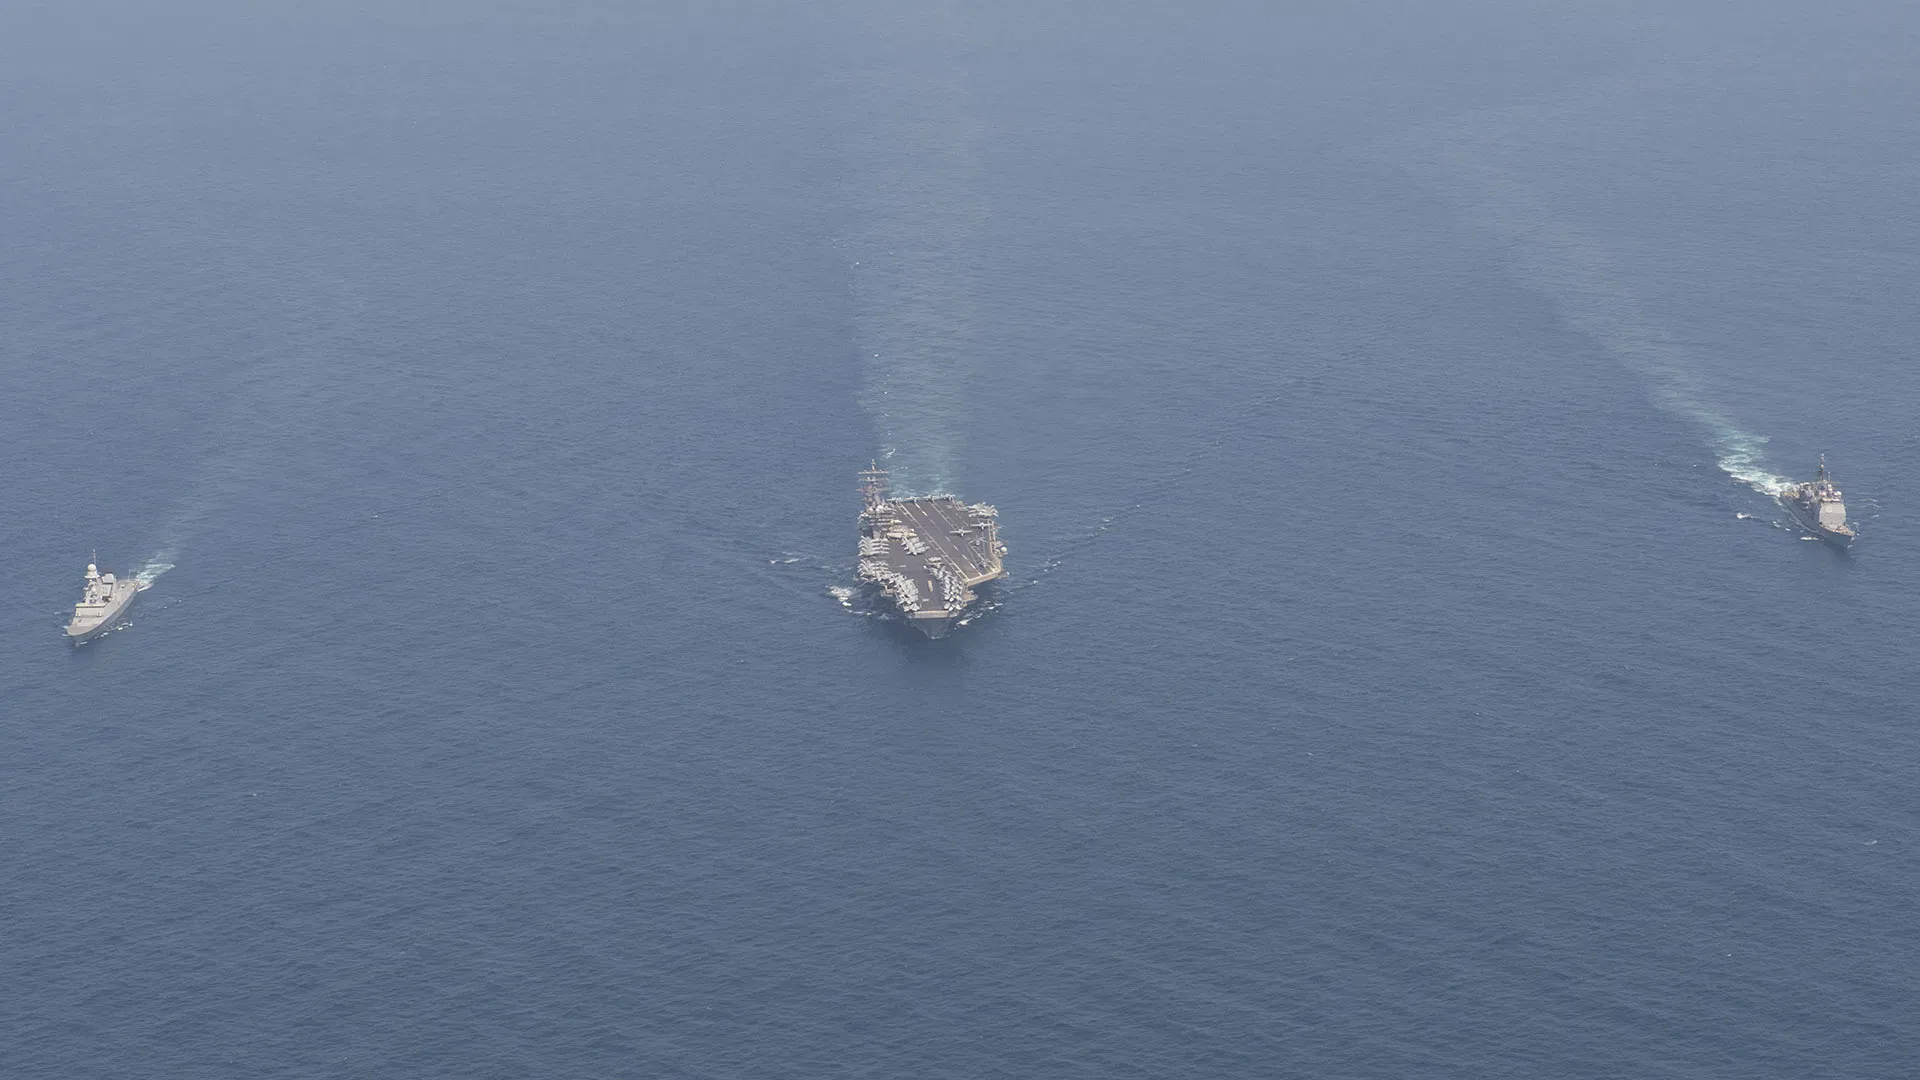 U.S. Has 7 Out Of Its 11 Aircraft Carriers Simultaneously Underway